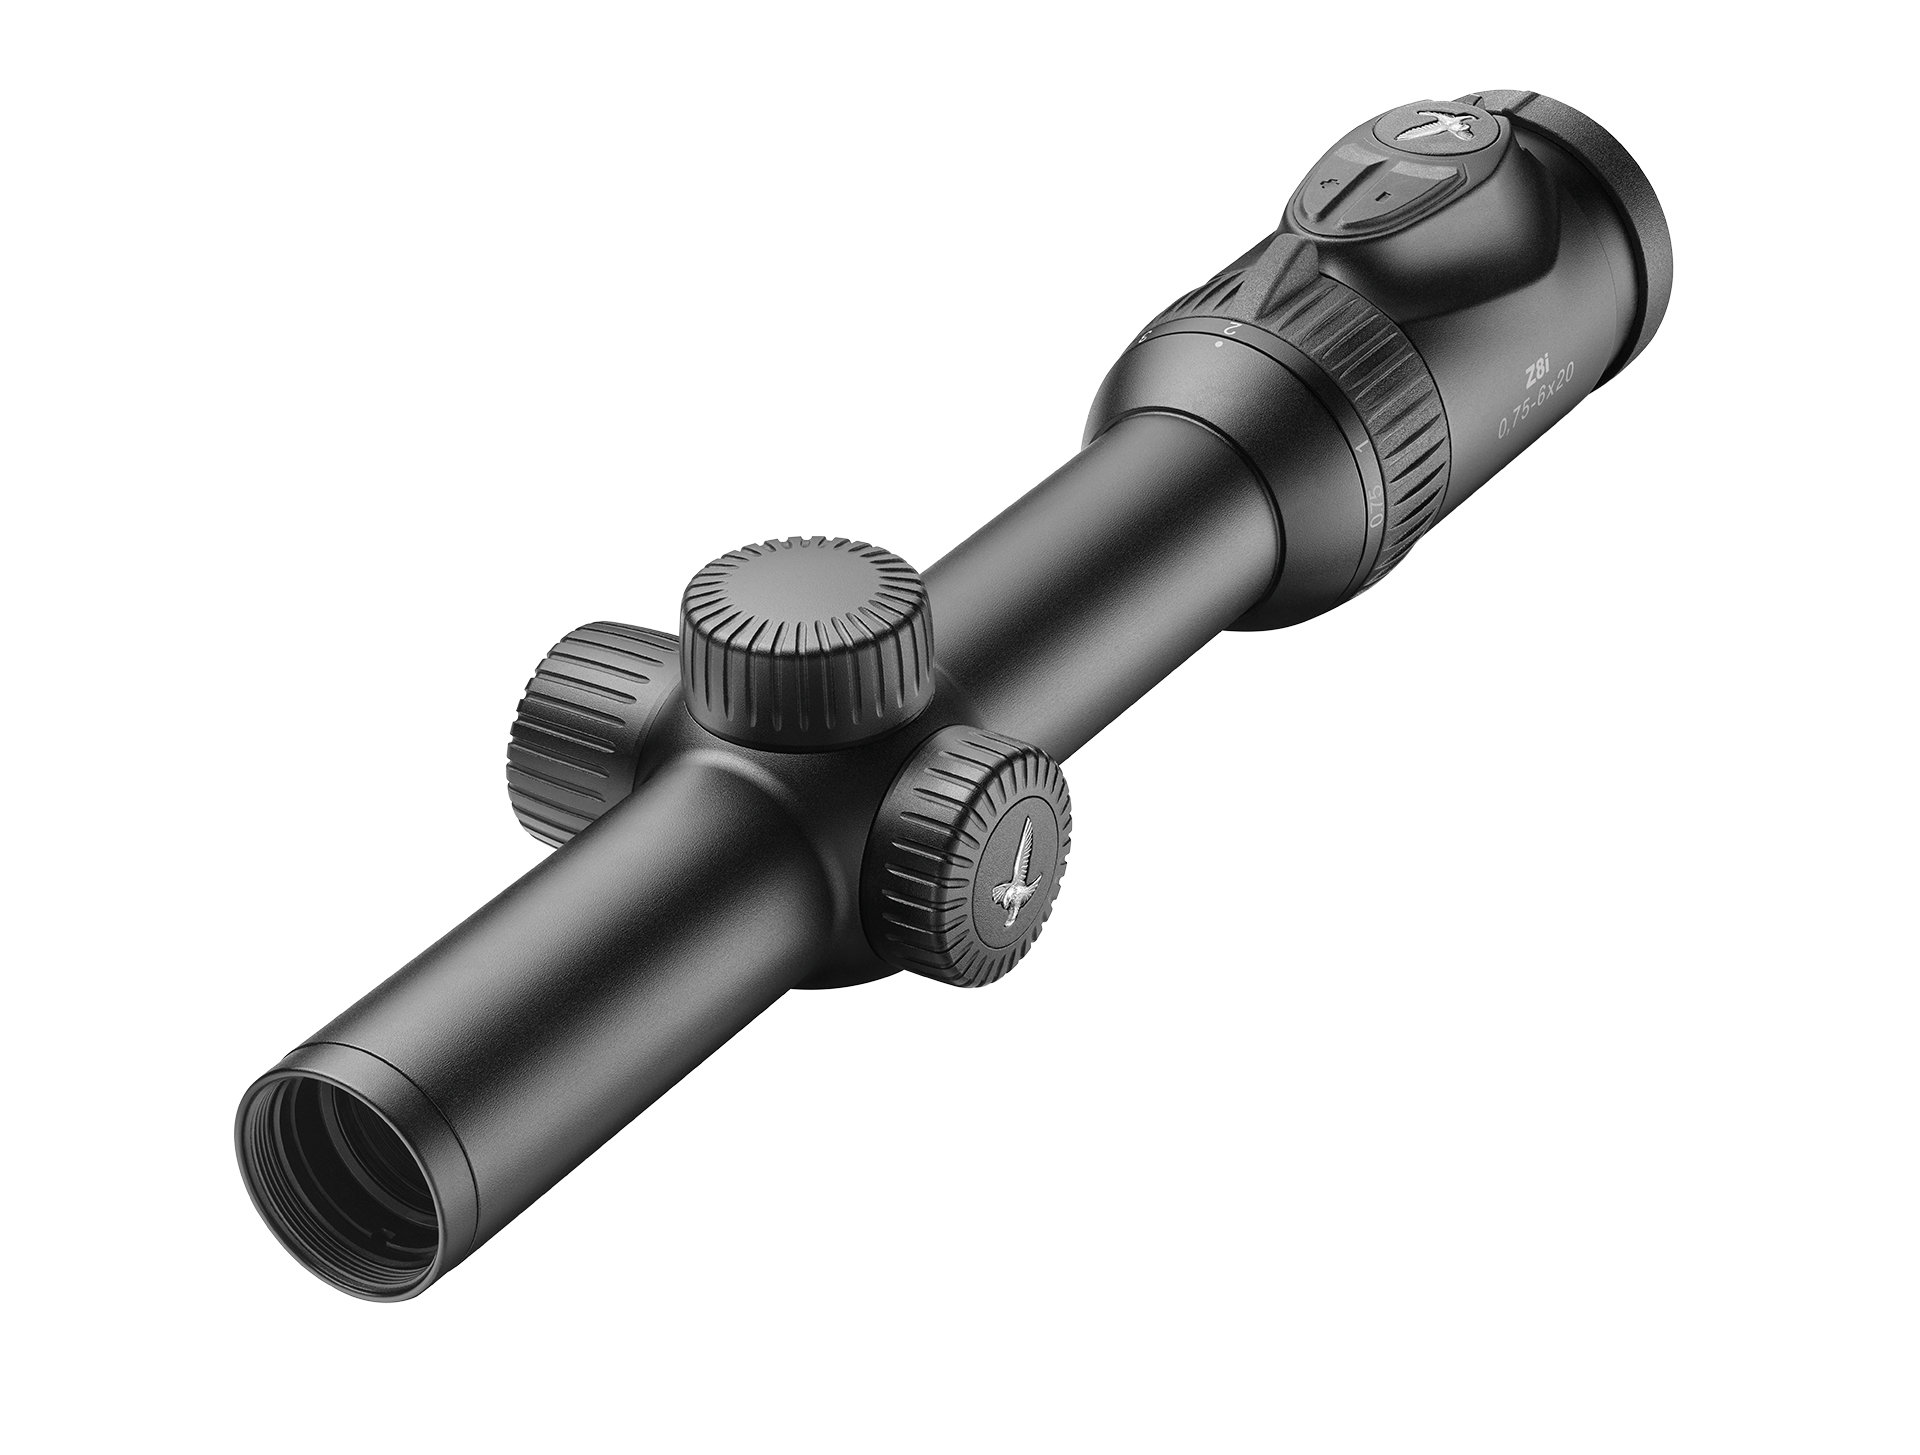 Swarovski Optik Riflescope Z8i 0,75-6x20